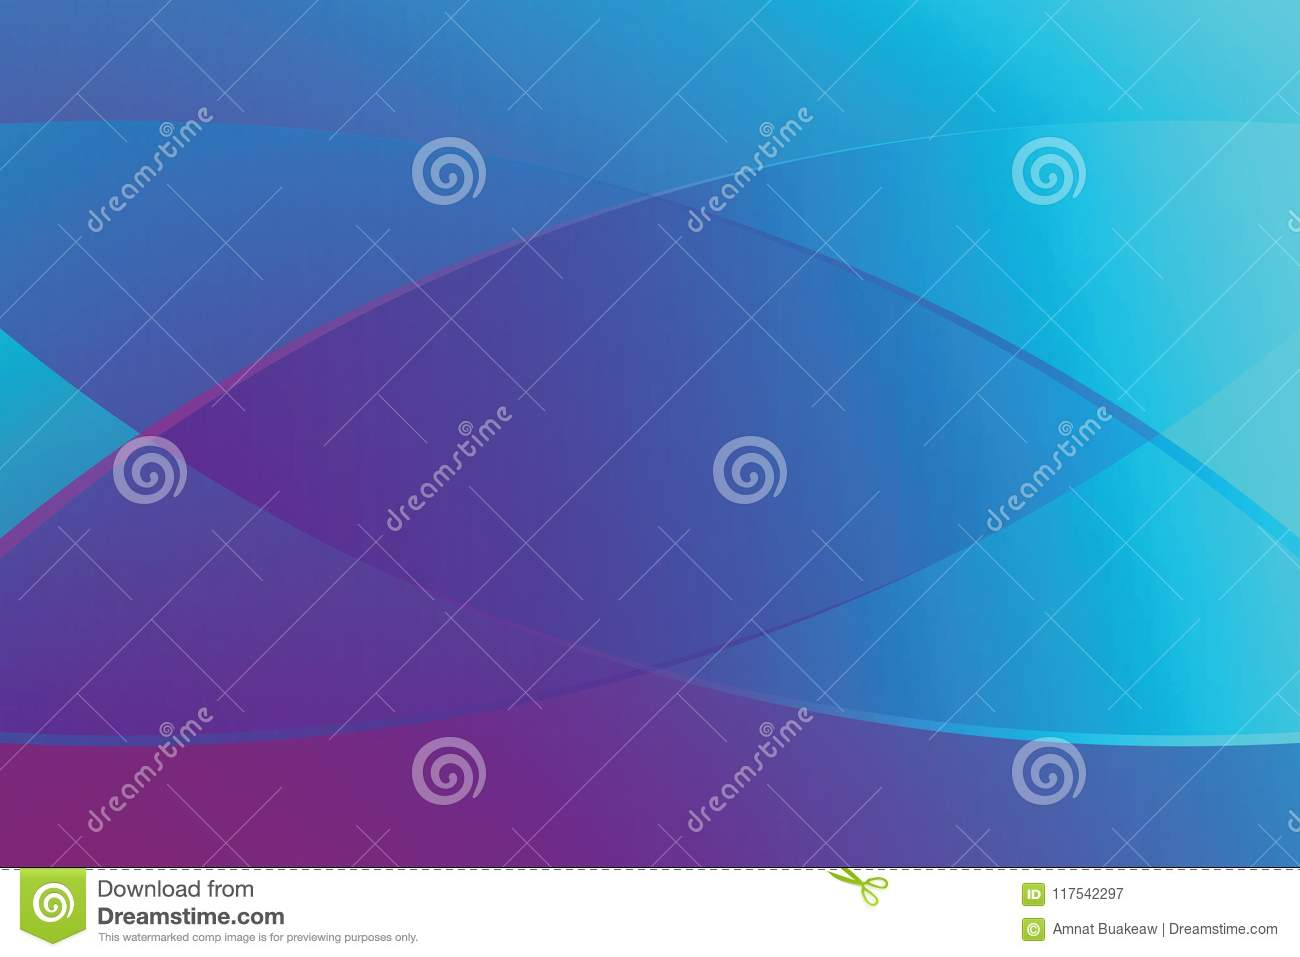 Blue Gradient Color Soft Light And Line Graphic For